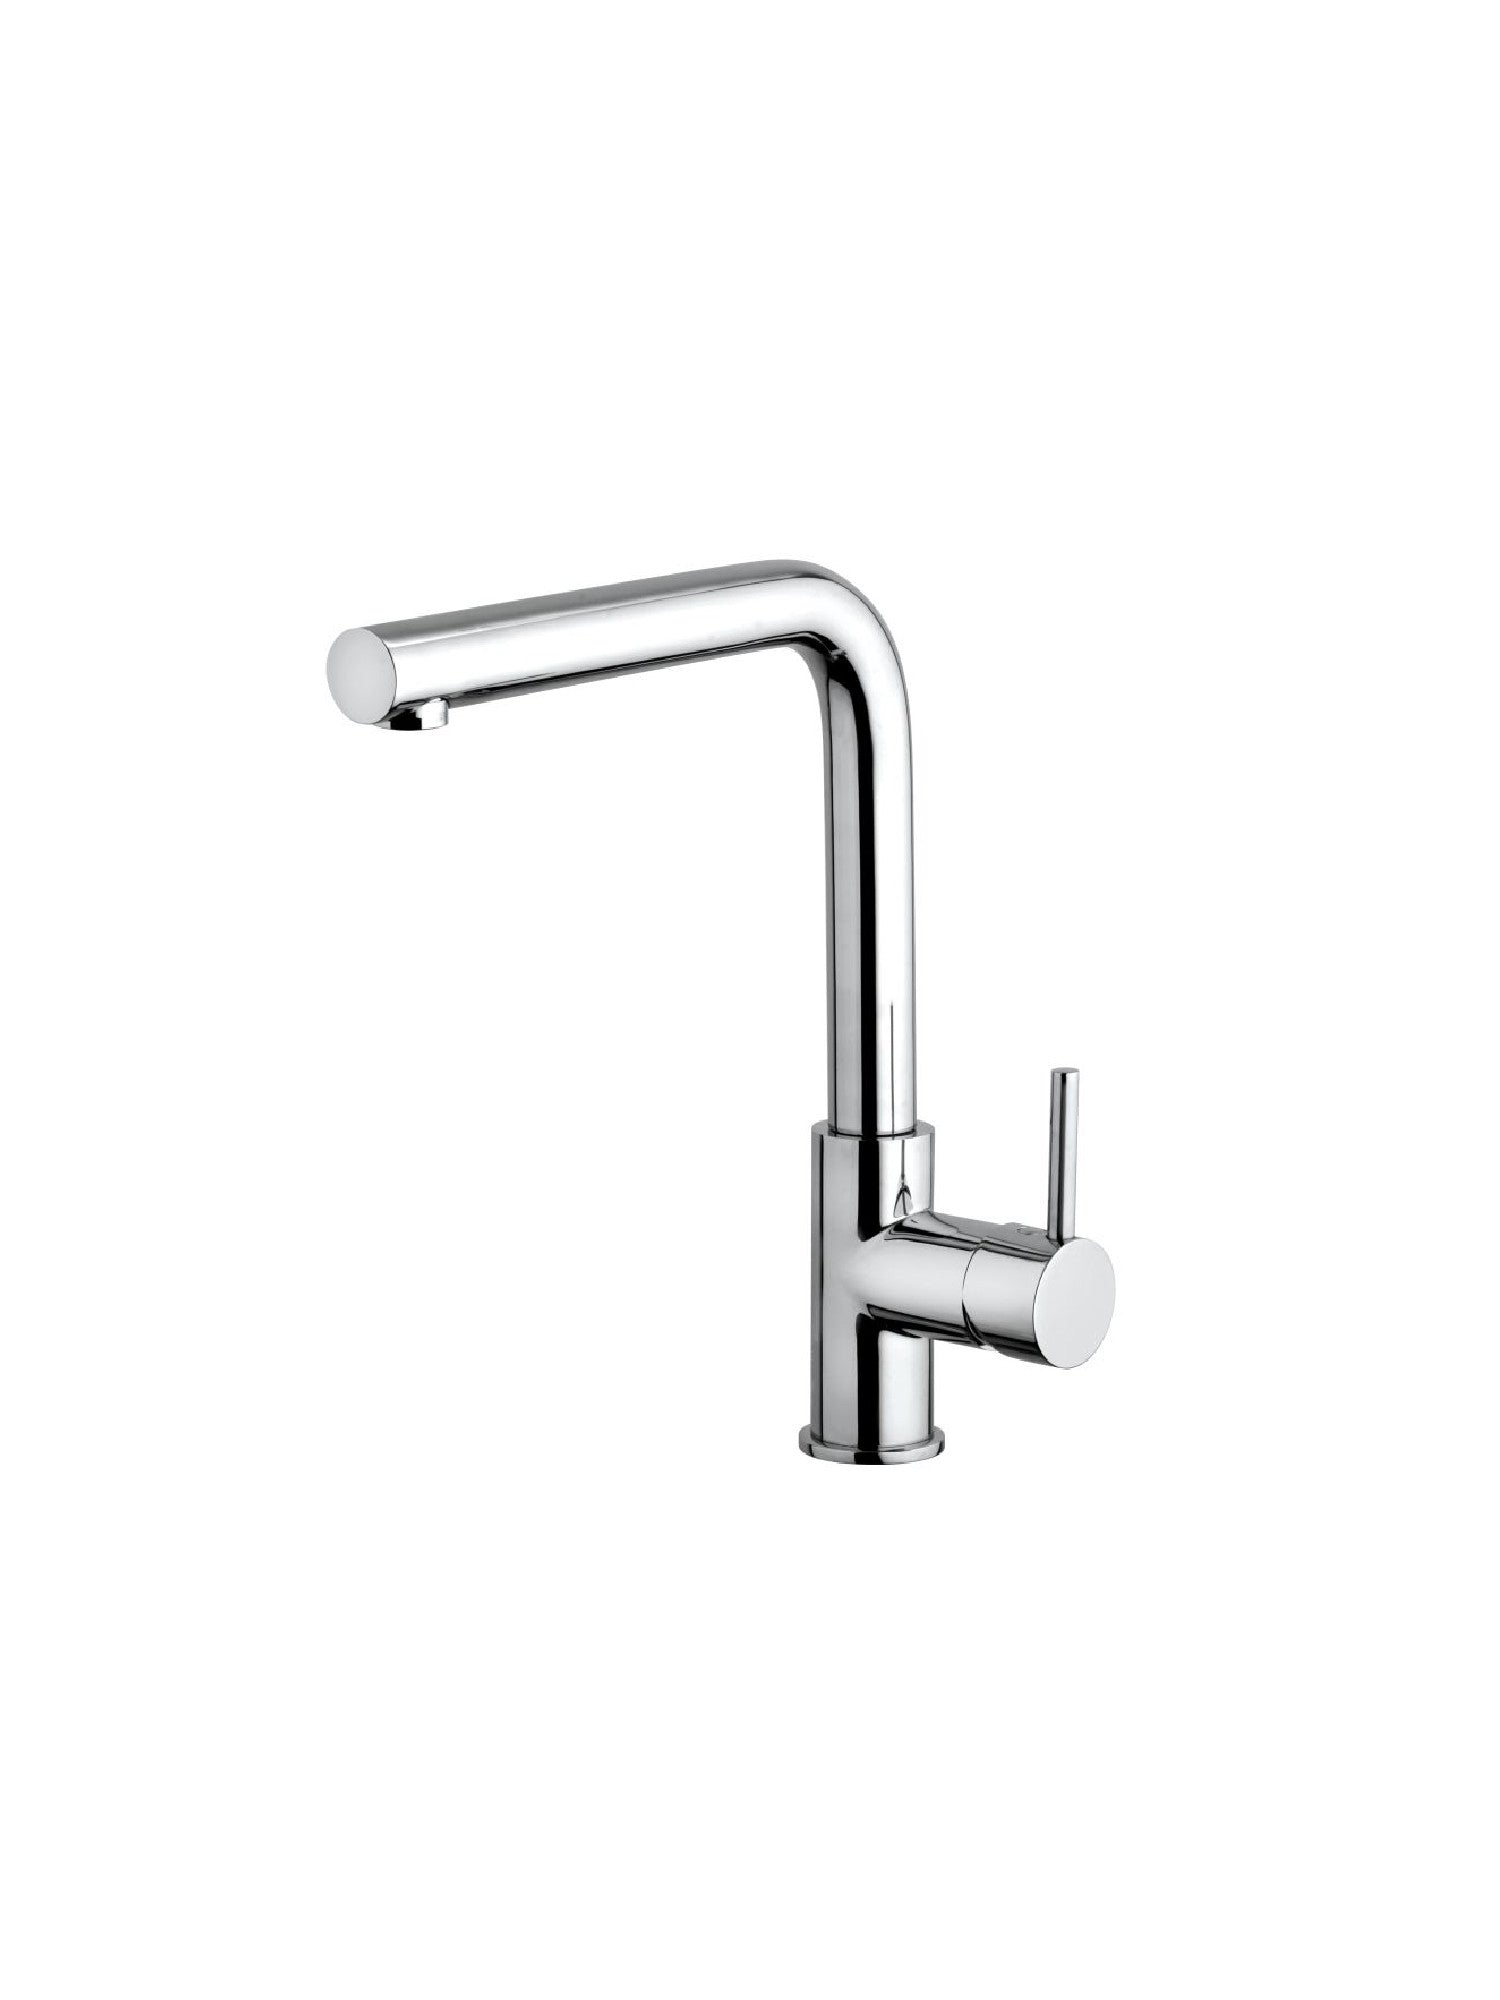 Noa Kitchen Mixer w/ Swivel Spout #77176